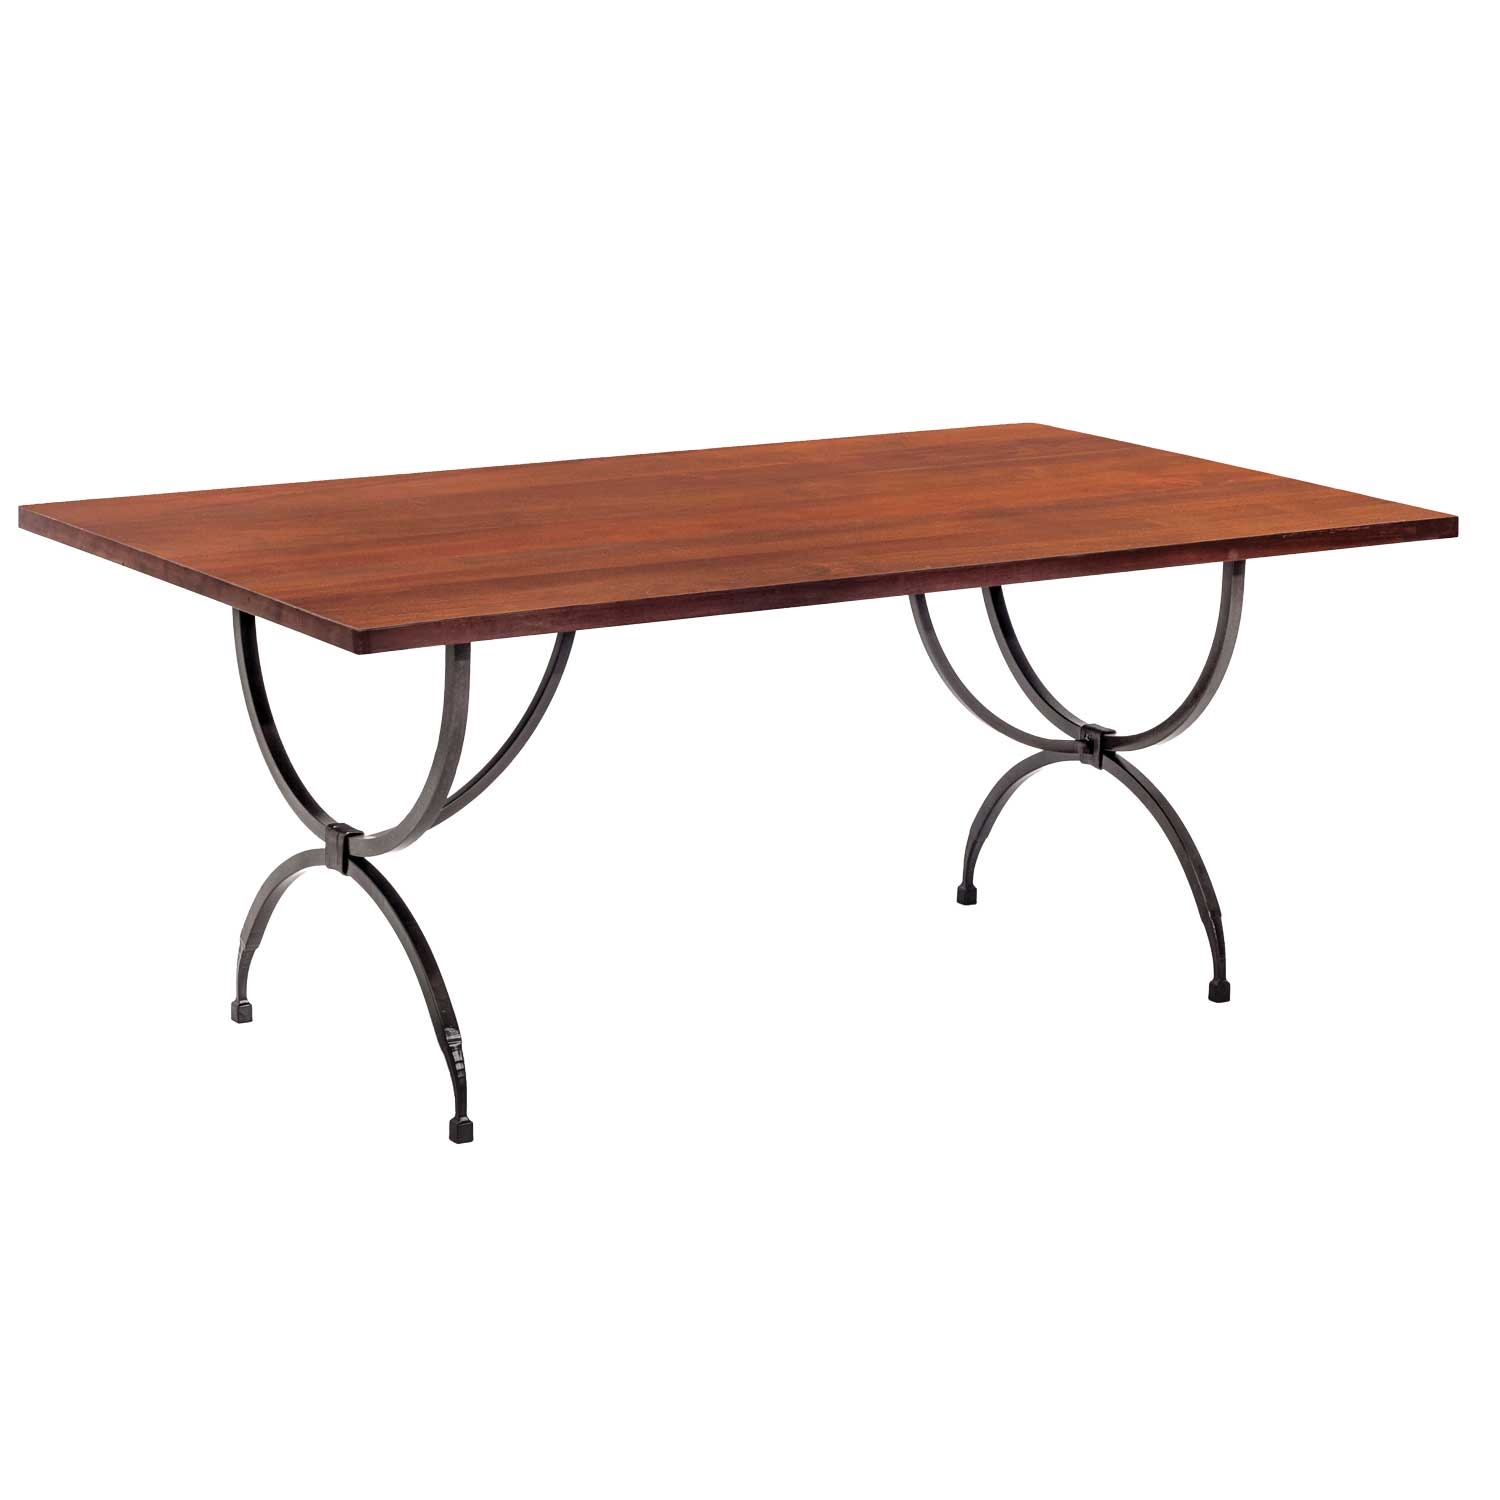 Blackberry Road Dining Table W 72quot x D 40quot x H 30quot : TWI CF T756 2 from www.timelesswroughtiron.com size 1500 x 1500 jpeg 154kB